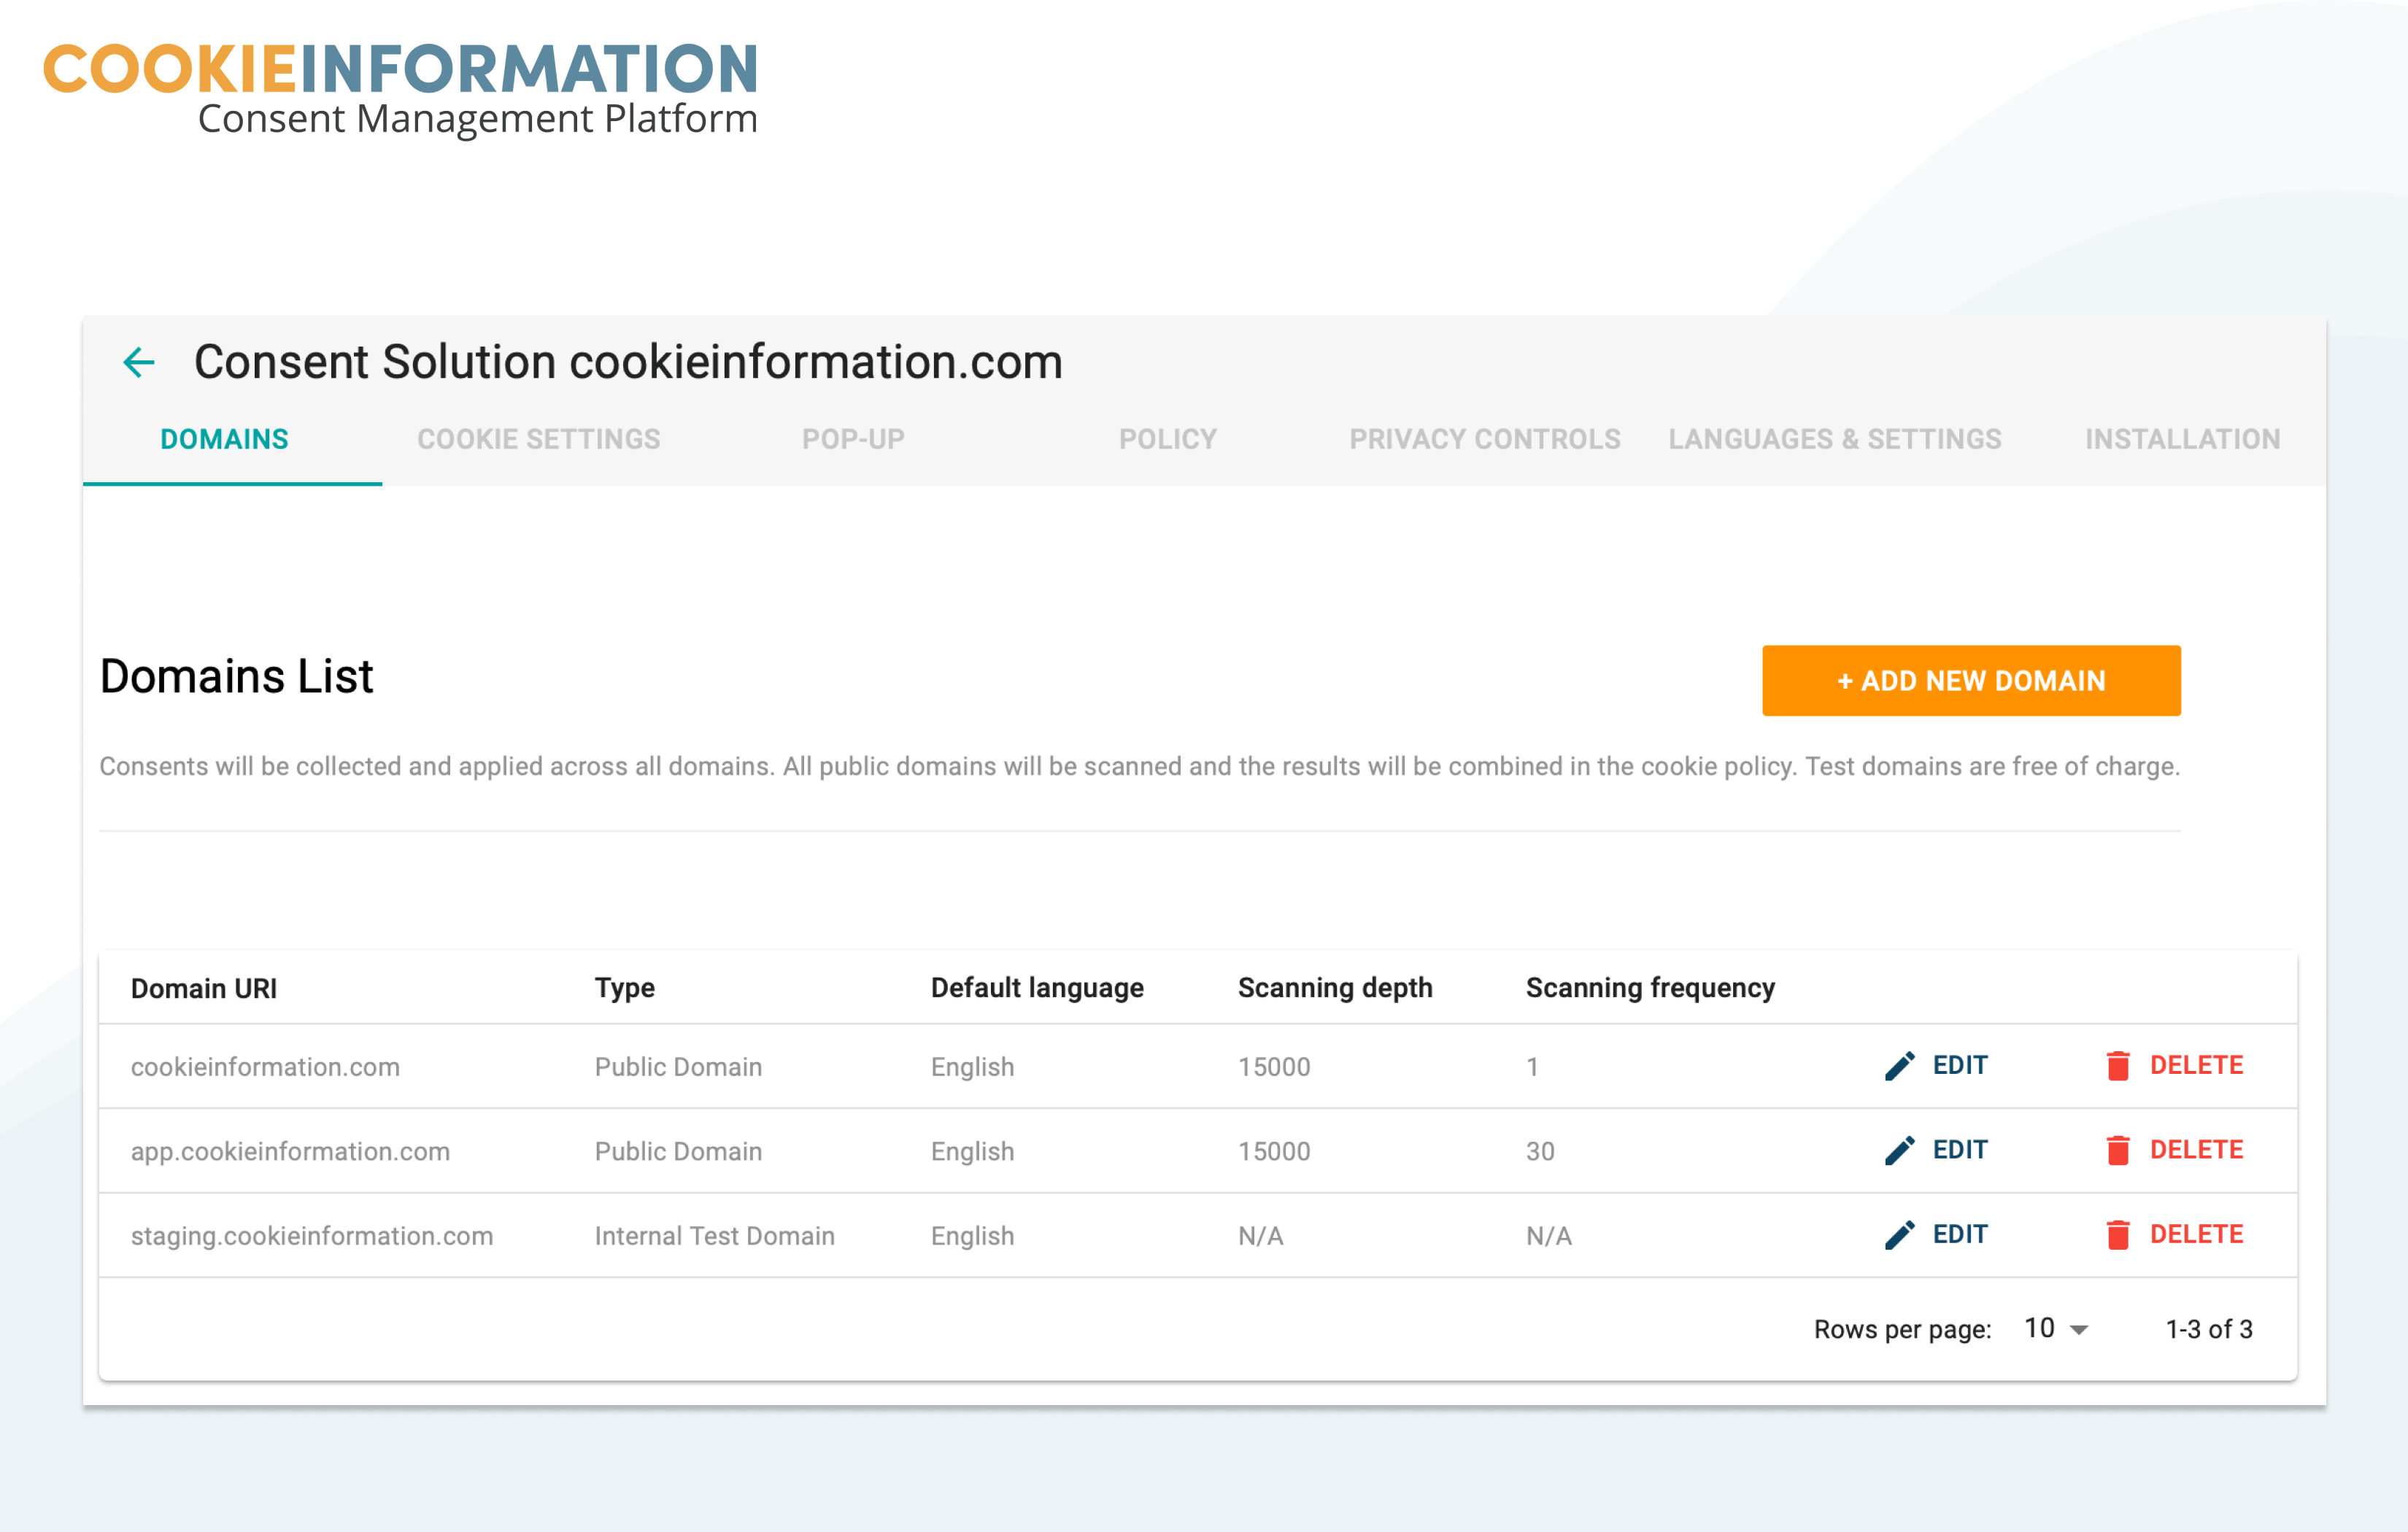 Managing domains overview in Cookie Information Platform